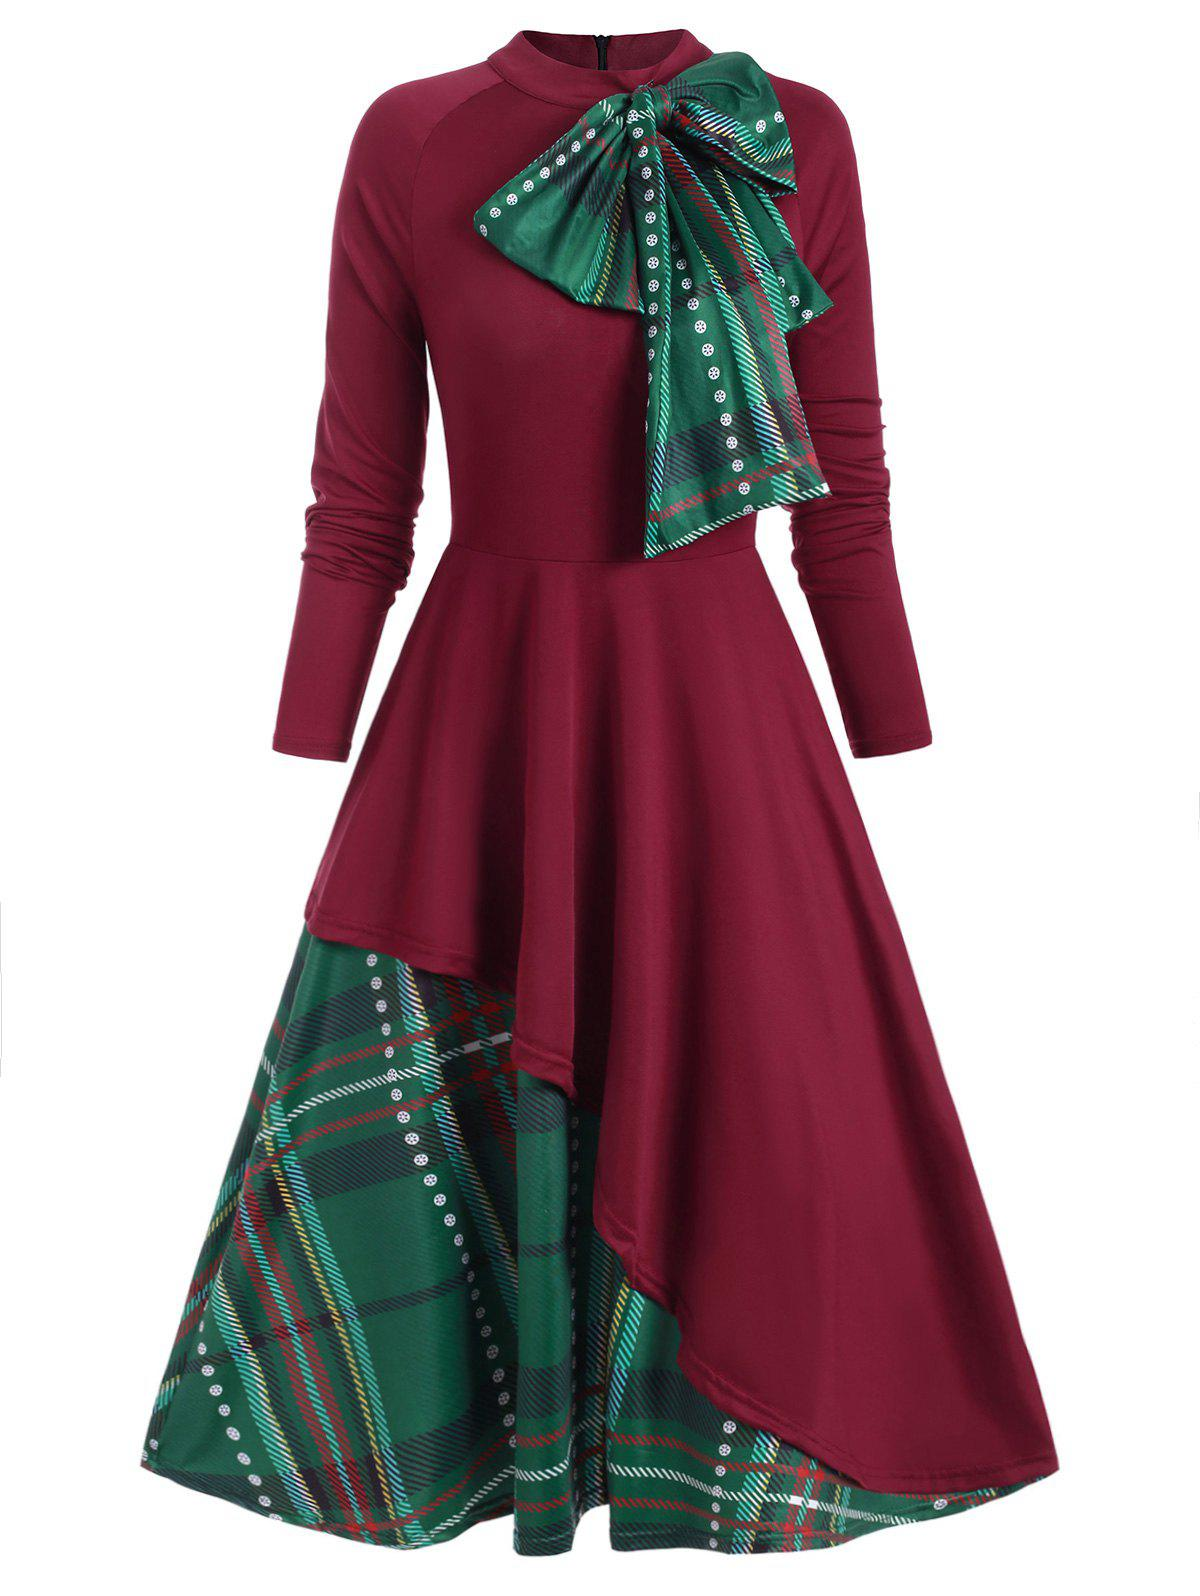 Fancy Plaid Contrast Bowknot Flared Overlay Dress